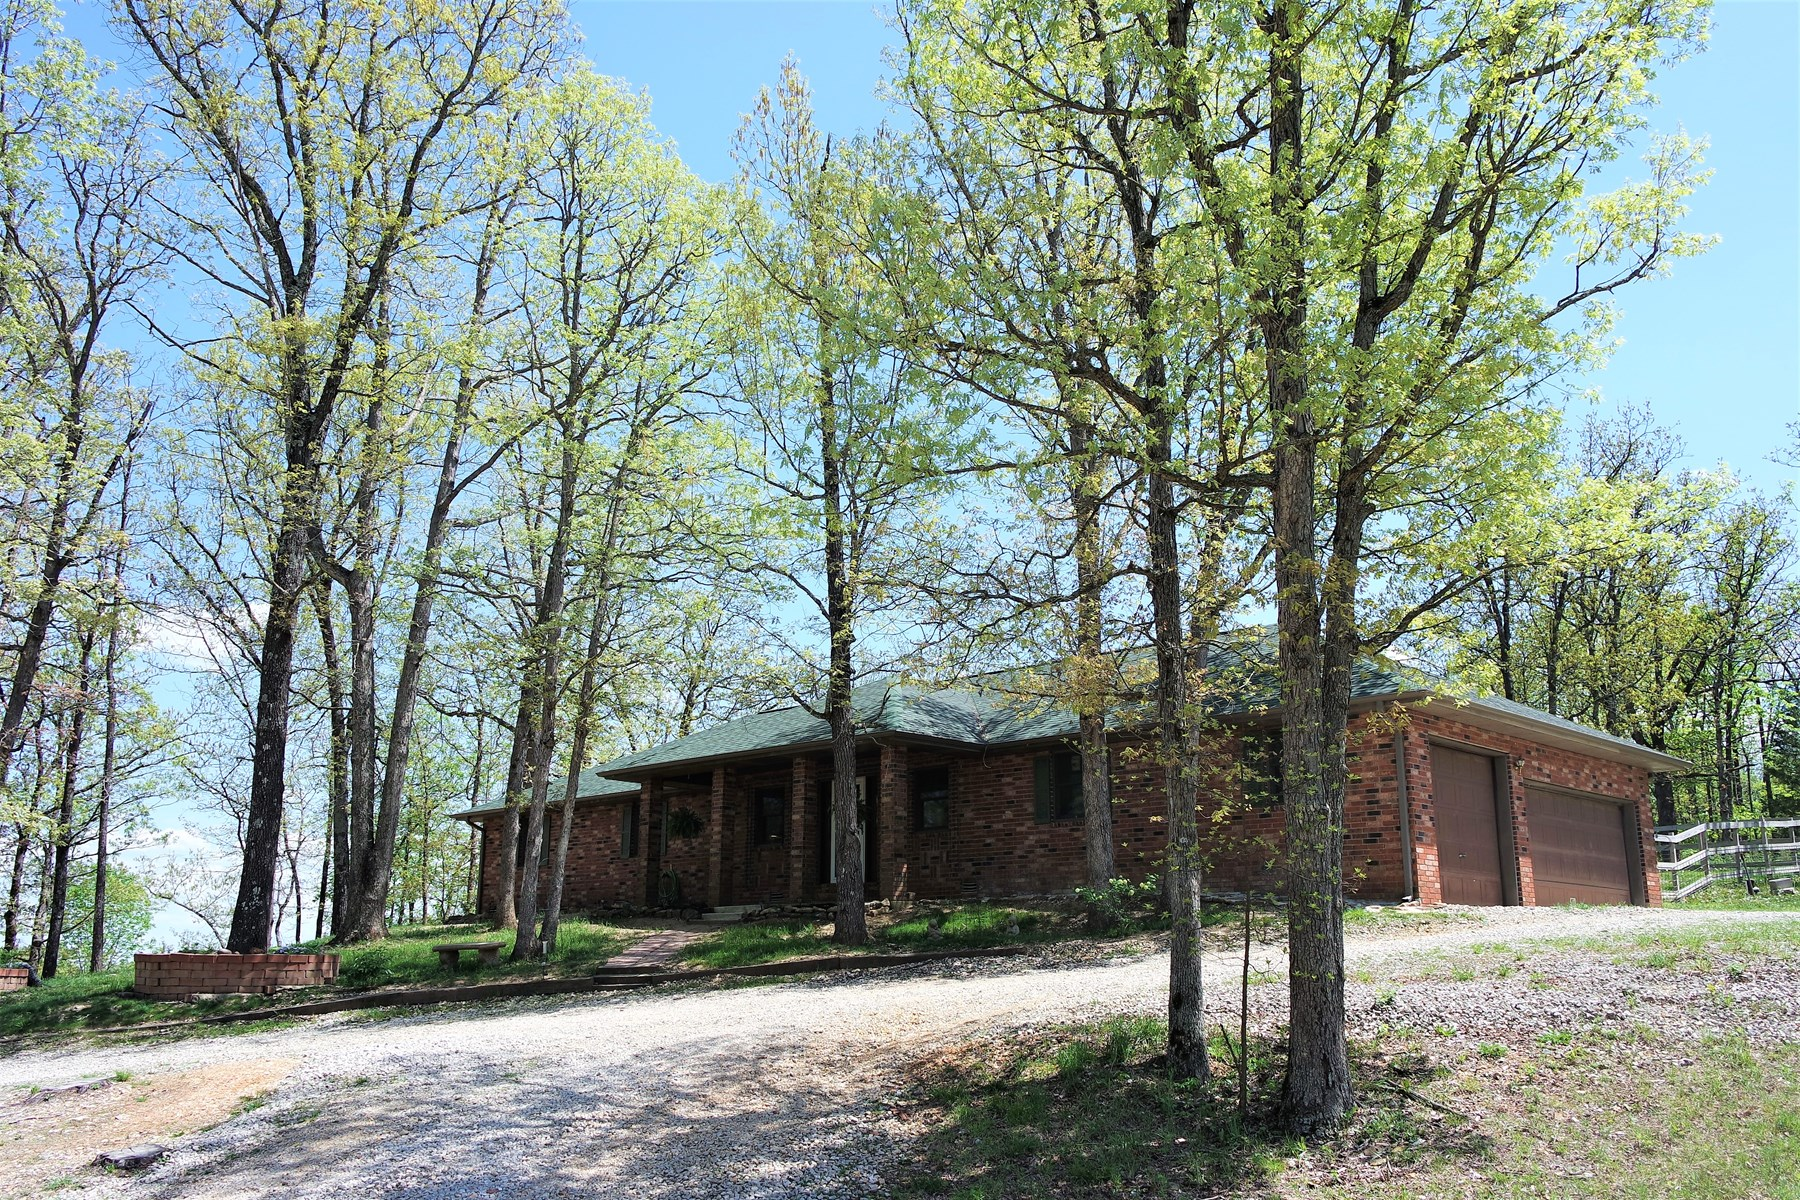 Brick Home For Sale on Acreage near Mountain Grove, Missouri